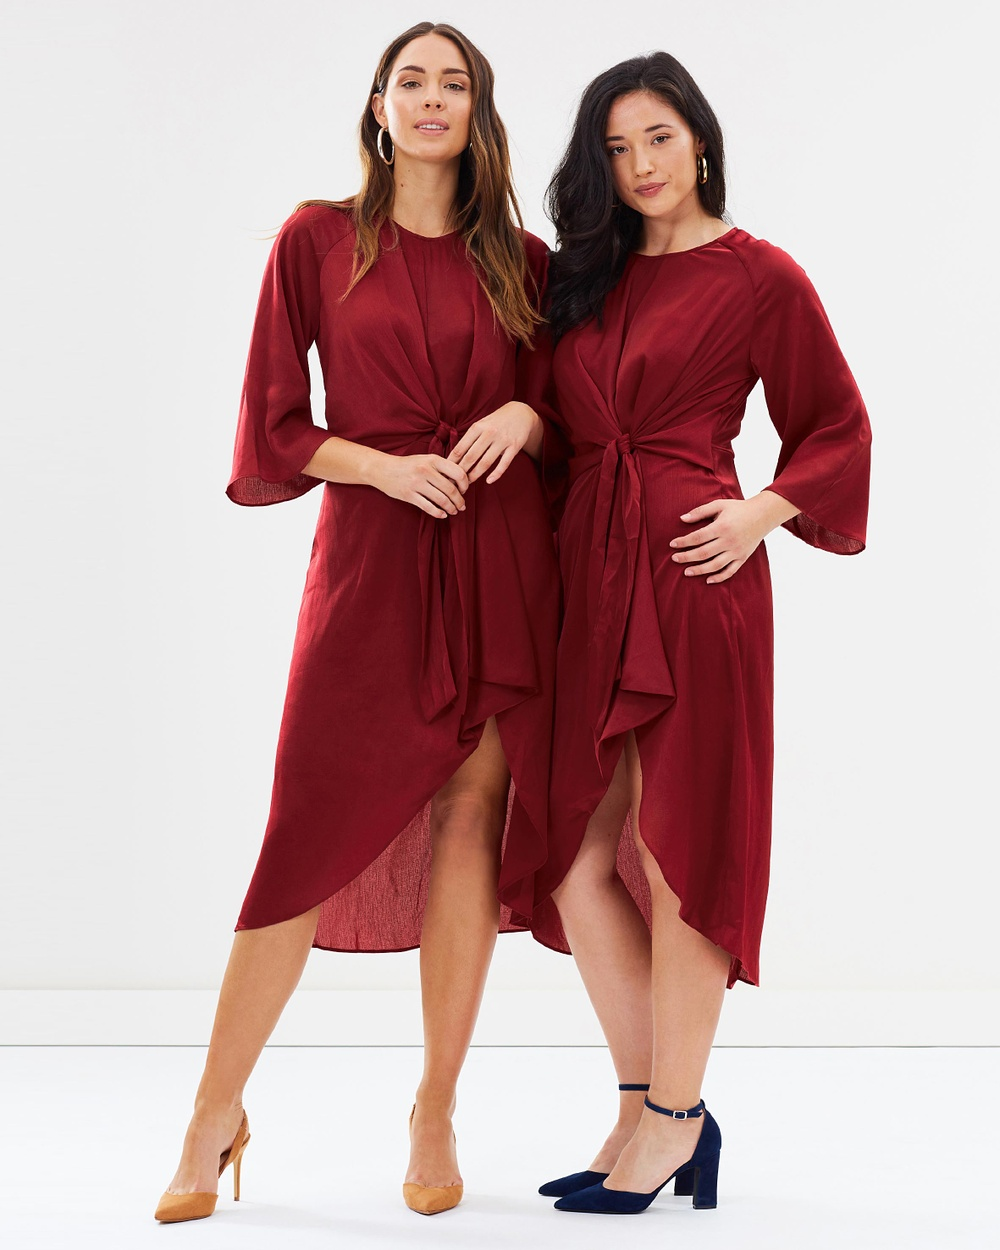 Forcast Kyla Knotted Dress Dresses Rust Kyla Knotted Dress